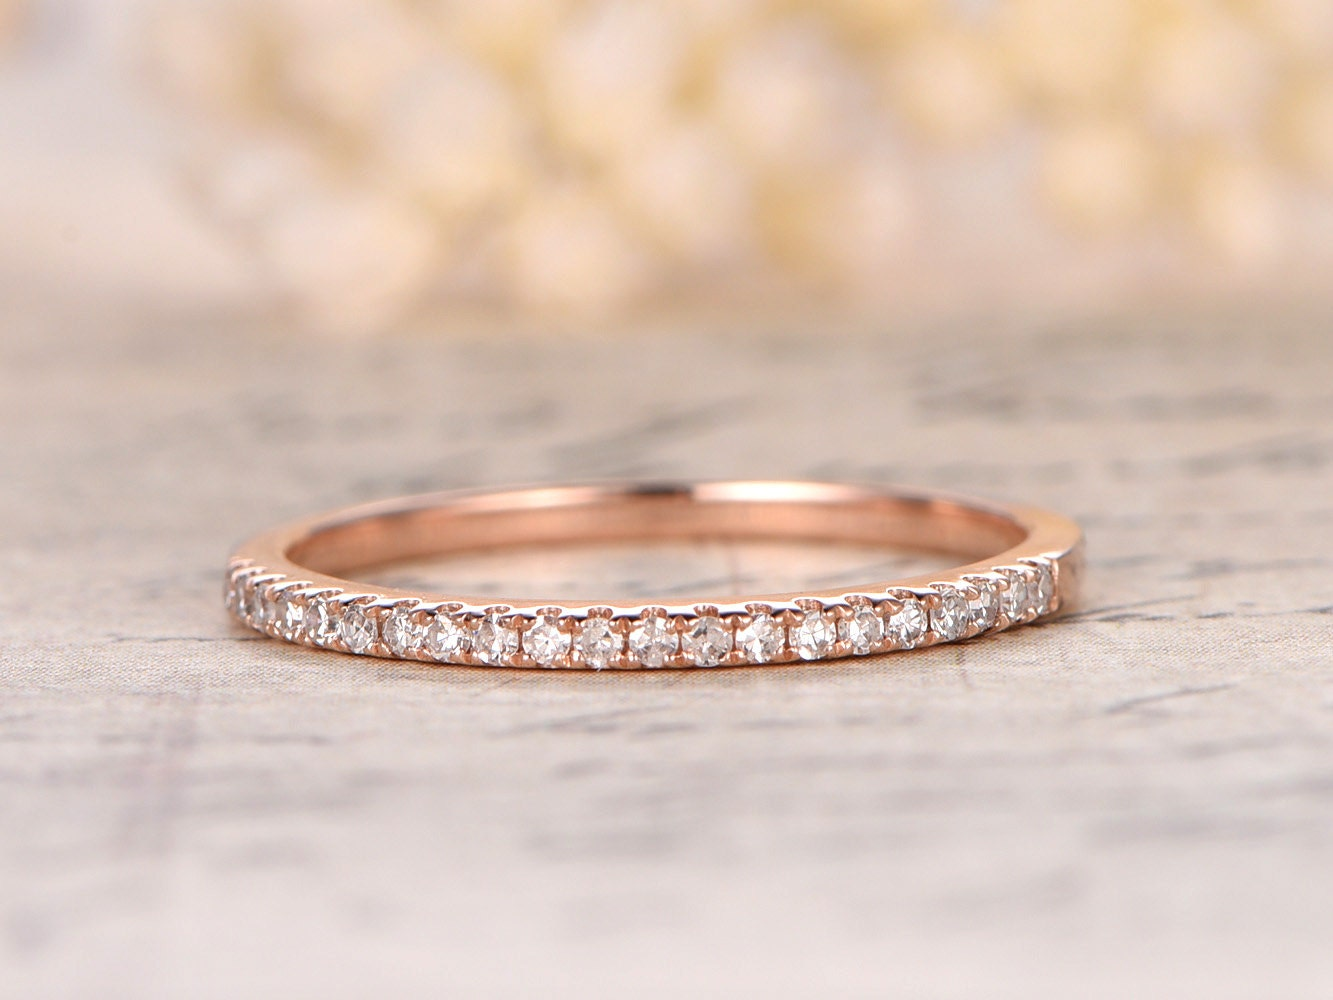 Diamond Wedding Band Half Eternity Ring Solid 14K Rose Gold